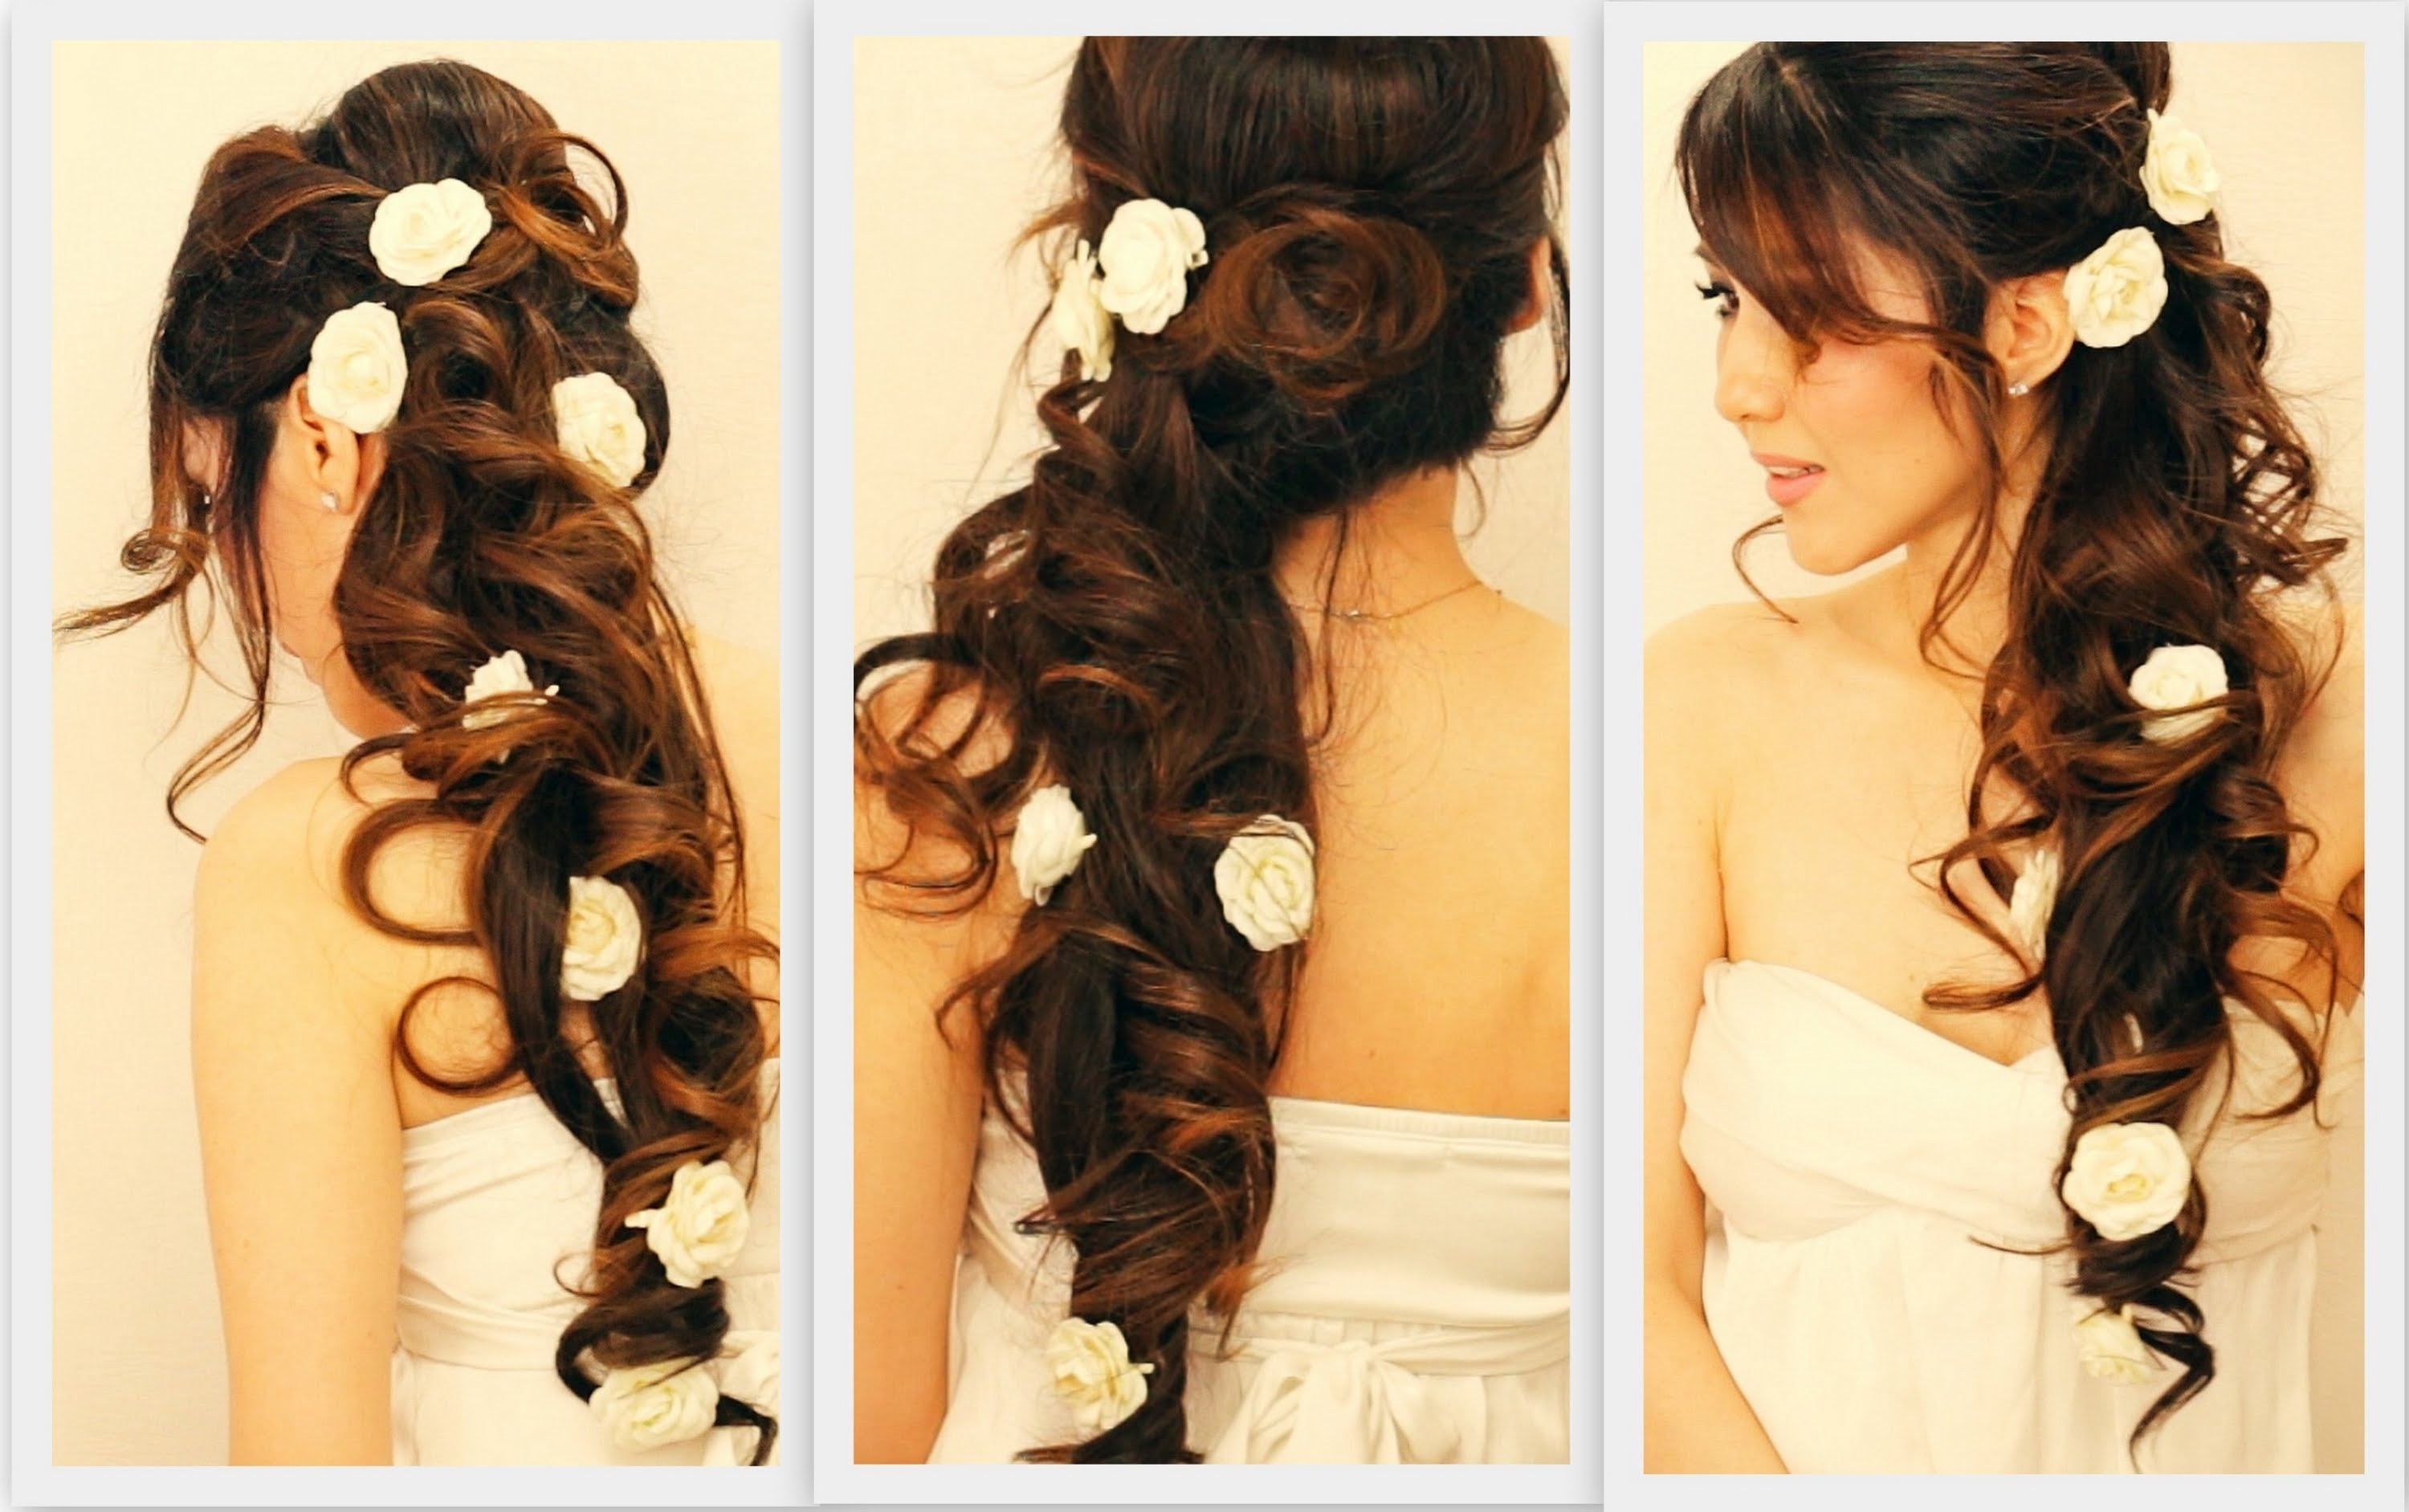 Hairstyle In Wedding Party: How To Make Romantic Half-up Updo Hairstyle With Curls For